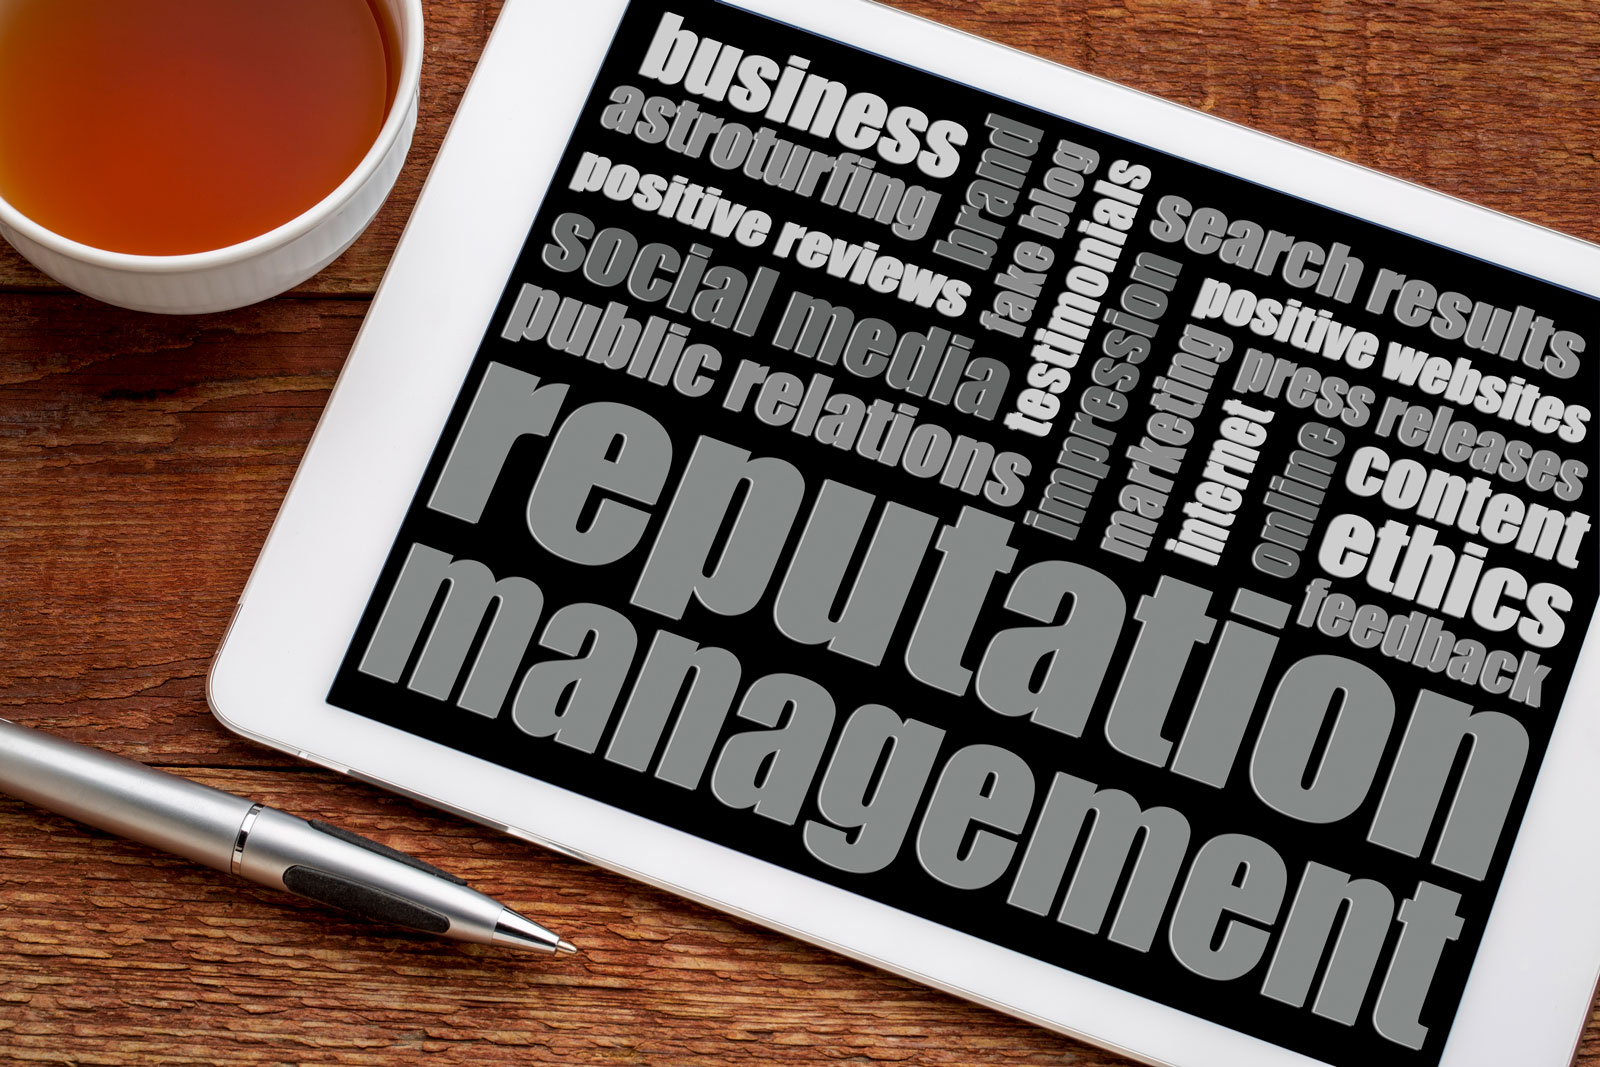 Reputation Management | Inbound Marketing: An A-Z Guide To Building Your Campaign